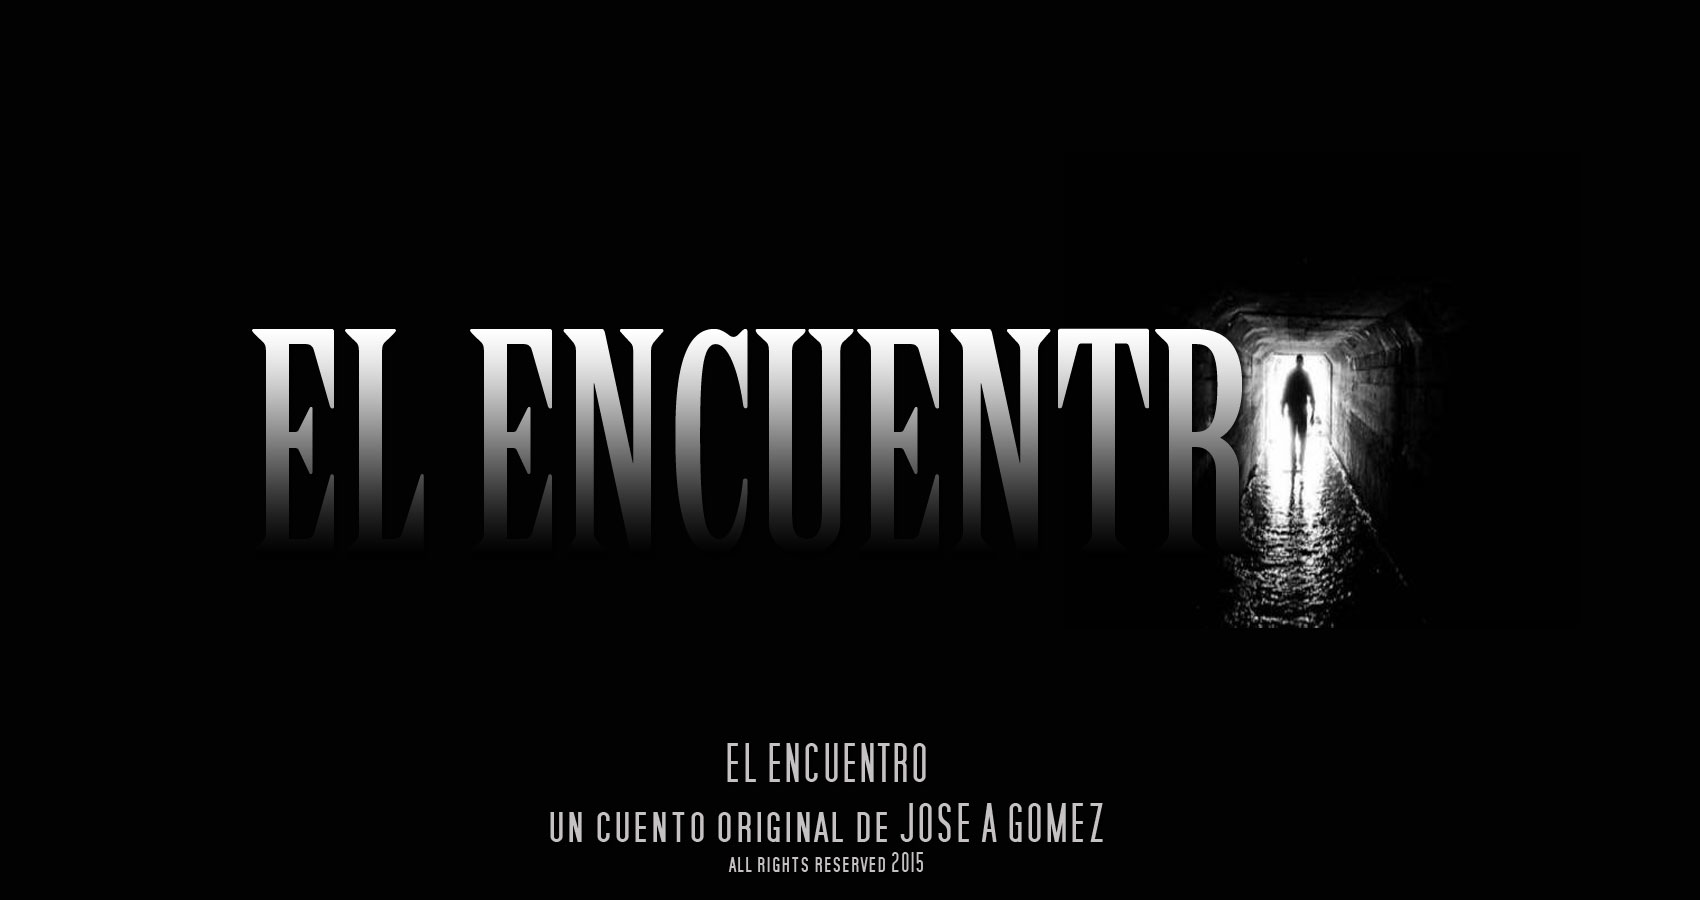 El Encuentro by Jose A Gomez at Spillwords.com